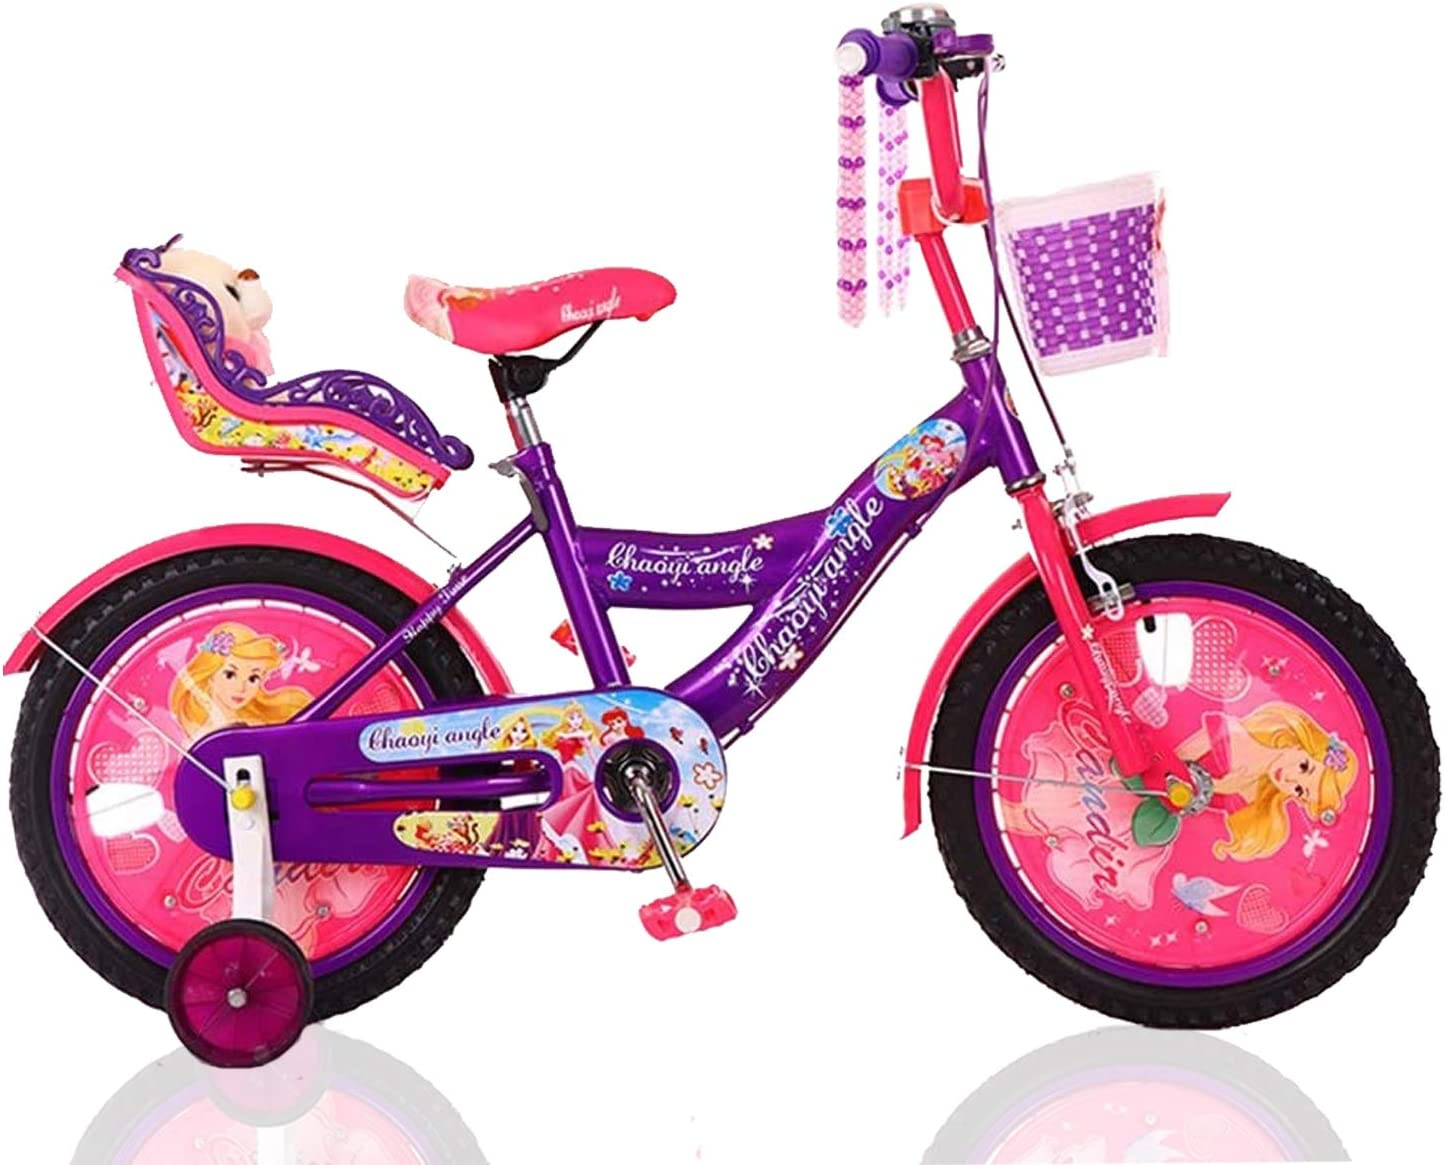 Ease-n-Comfort Girls Bike Lightweight Girl Bikes With Stabilisers Basket /& Dolly Seat Portable PINK Children Bikes Mountain Bicycles Sports Bike Removable Training Wheels FREE HELMET